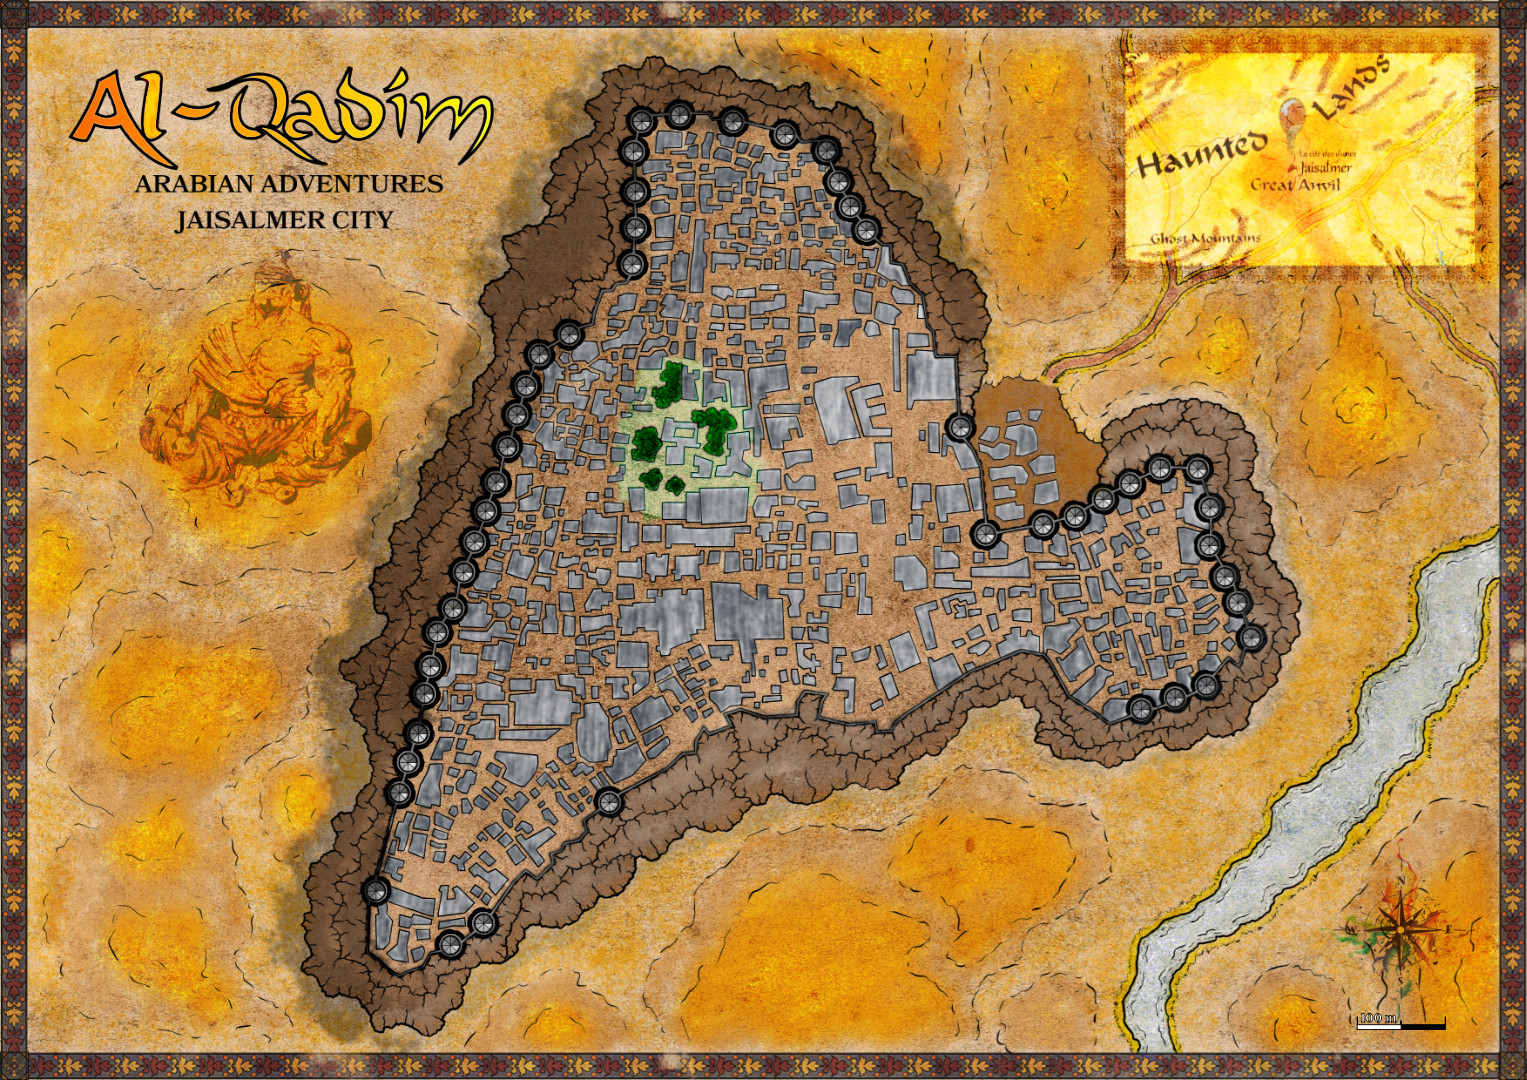 Jaisalmer - CIty in the desert from AD&D2 Al Qadim Universe